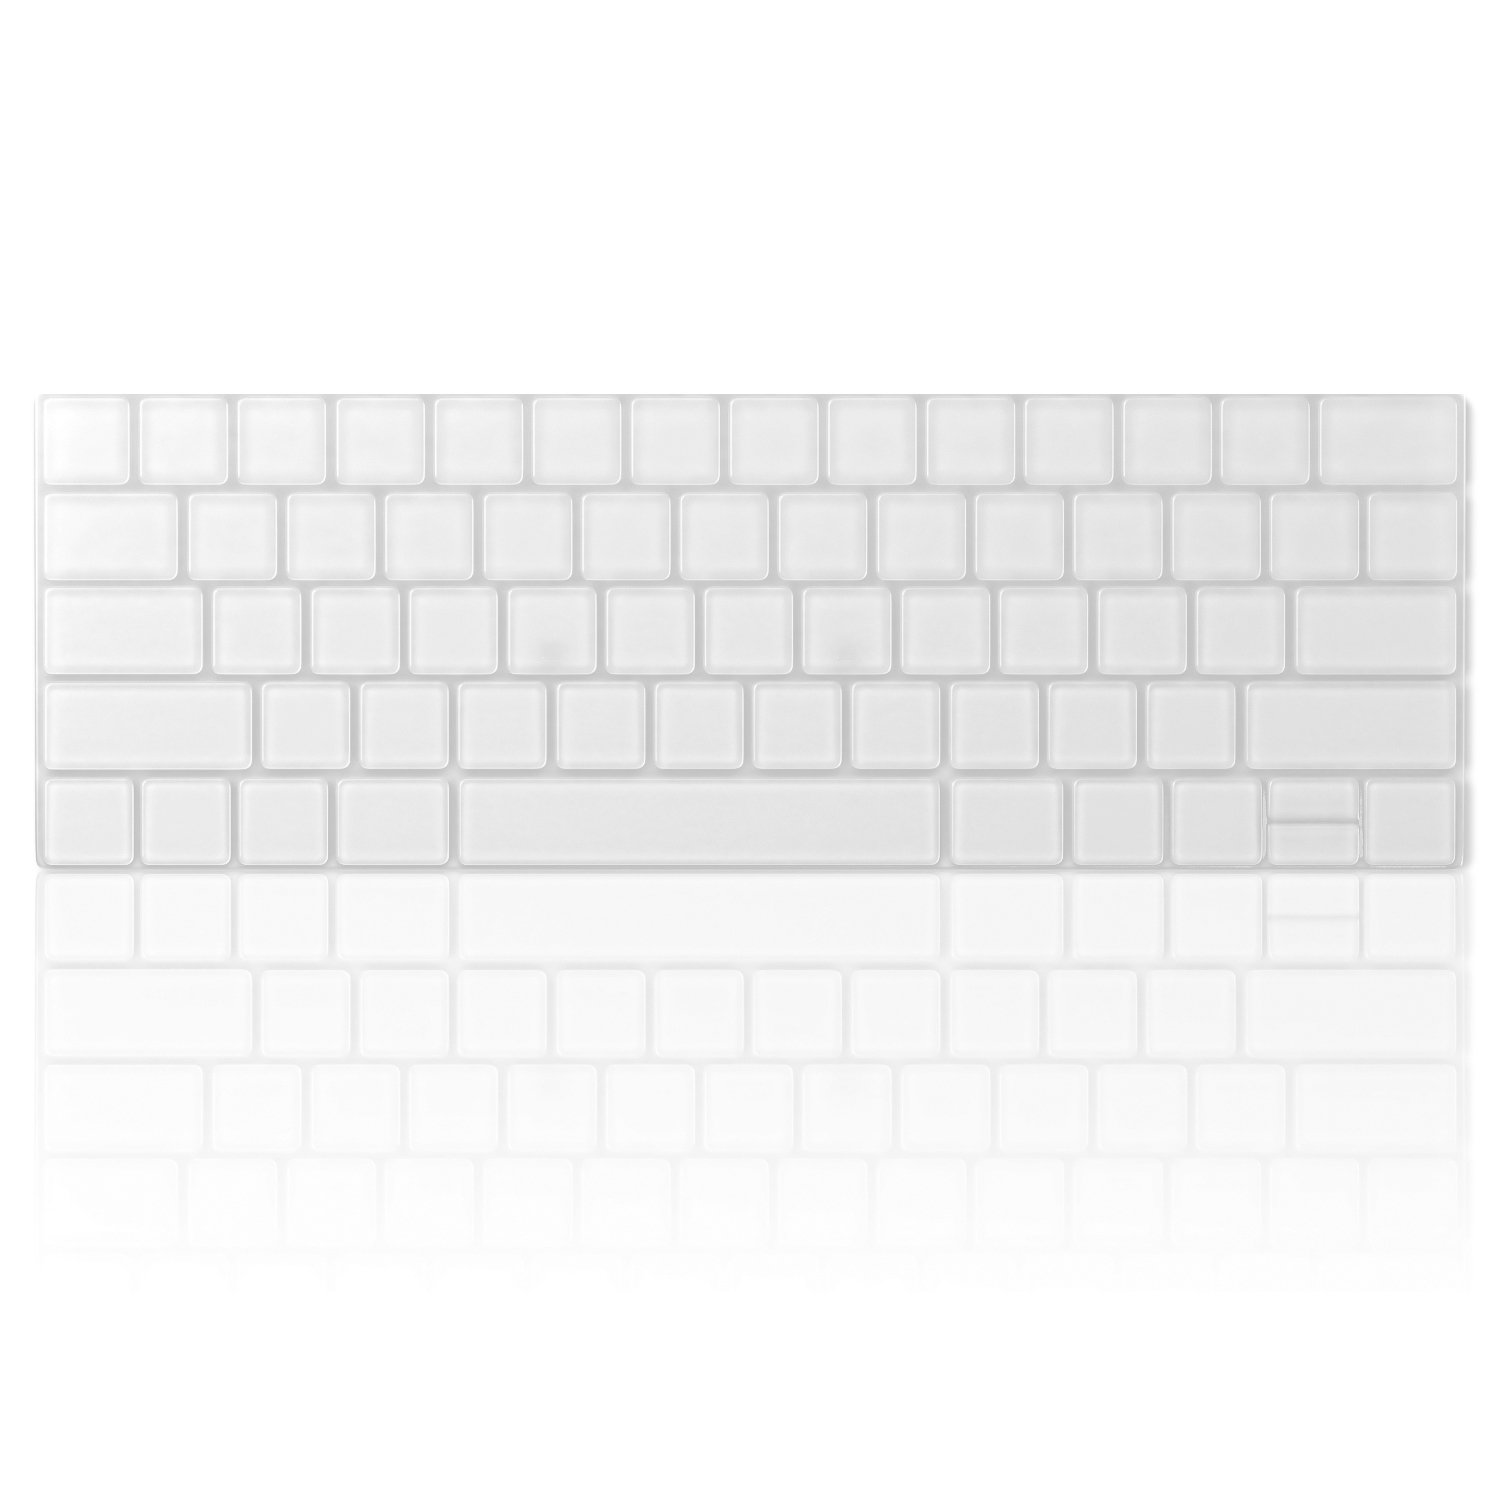 CLEAR MacBook Pro Keyboard Cover with Touch Bar 13 and 15 inch Premium Ultra Thin TPU NEW 2019 2018 2017 2016 Kuzy Skin Protector Apple Model A1989 A1990 A1706 A1707